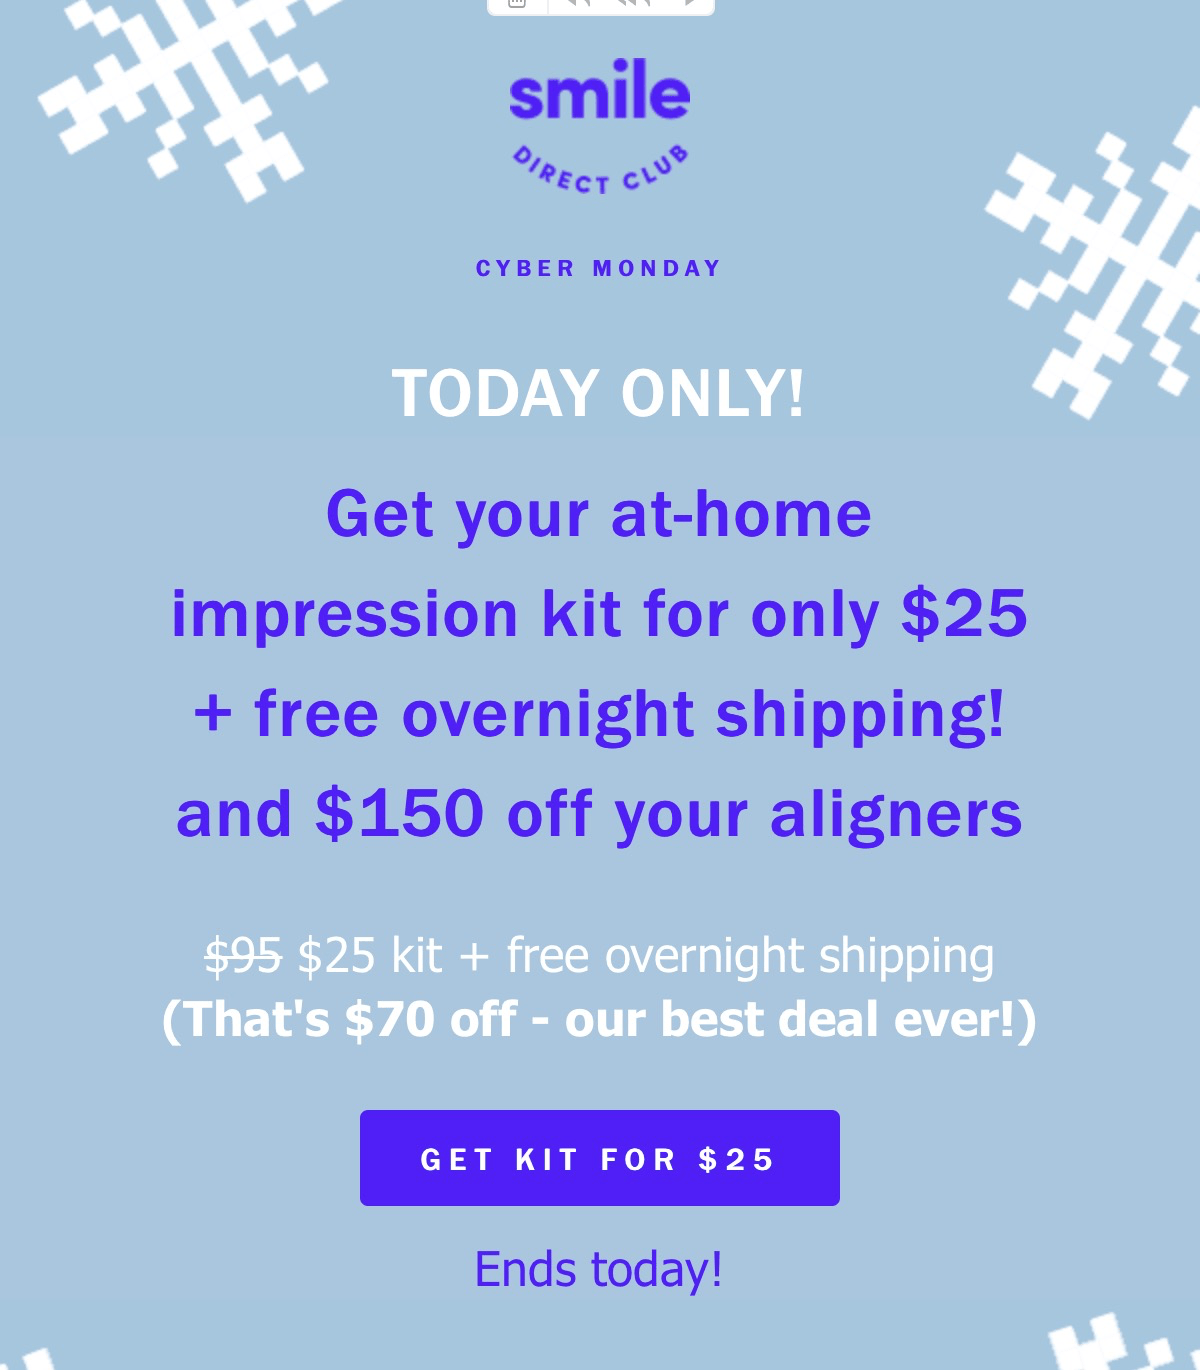 Smile Direct Club Cyber Monday Coupon: Impression Kit – $35 Shipped Overnight!